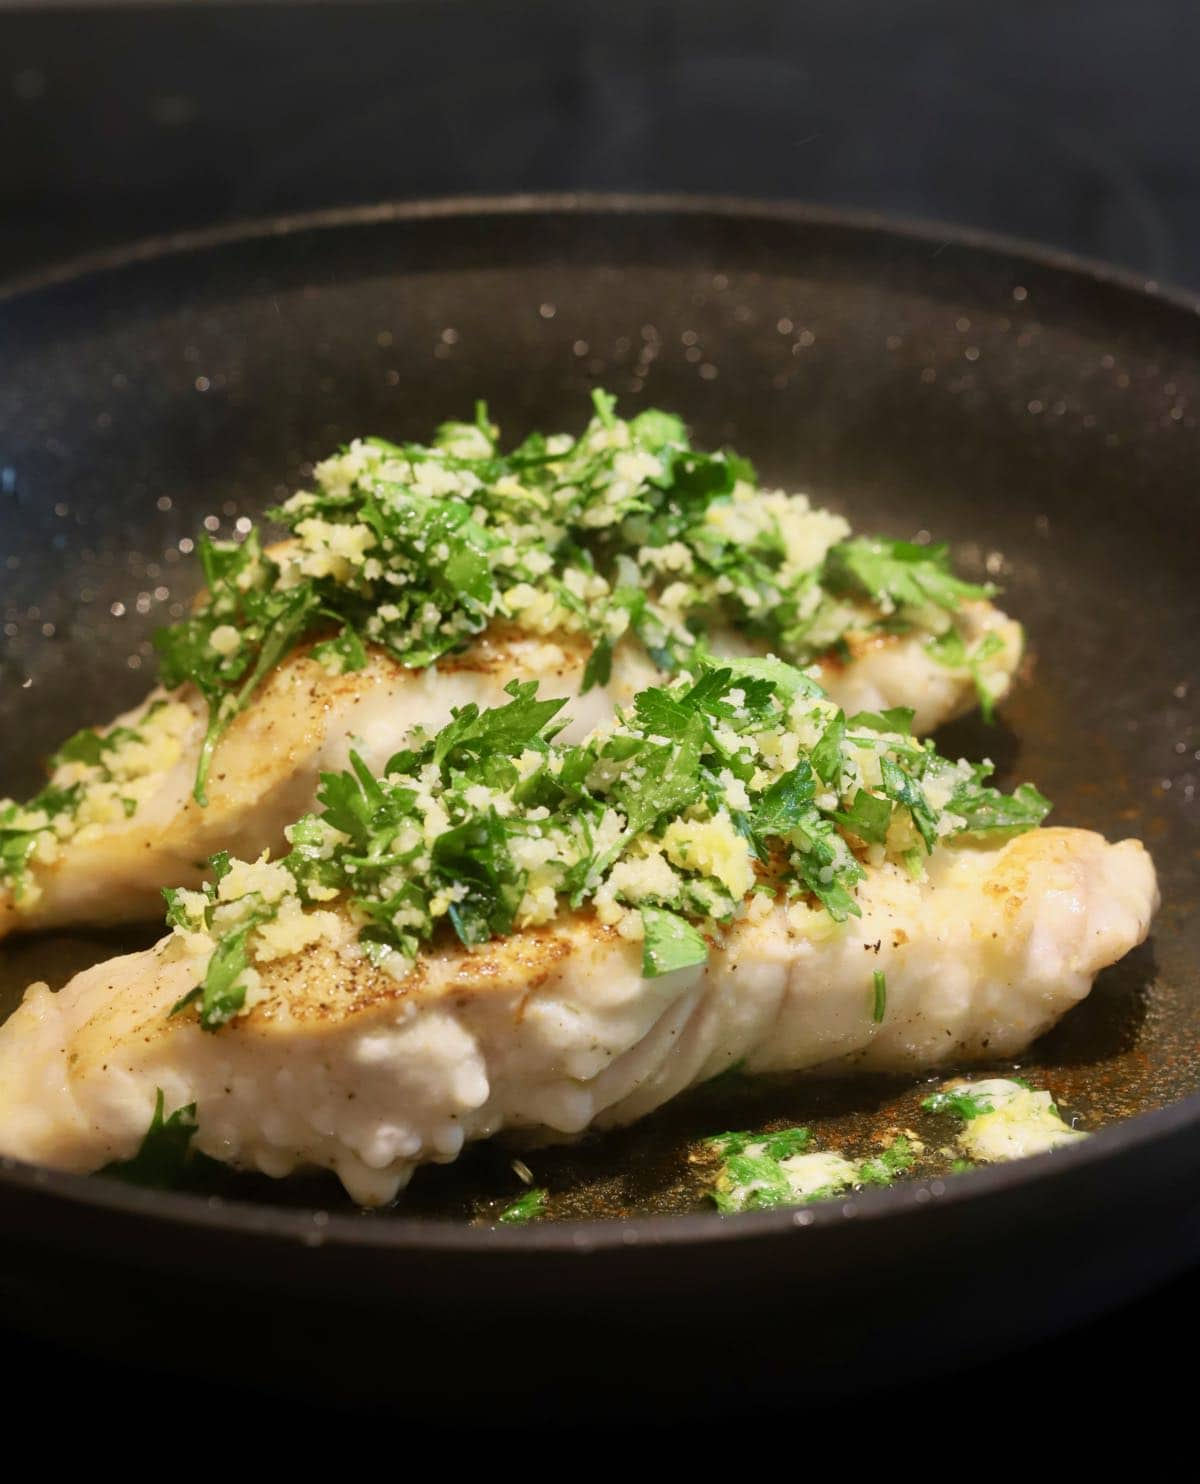 Two grouper fillets topped with a gremolata mixture.